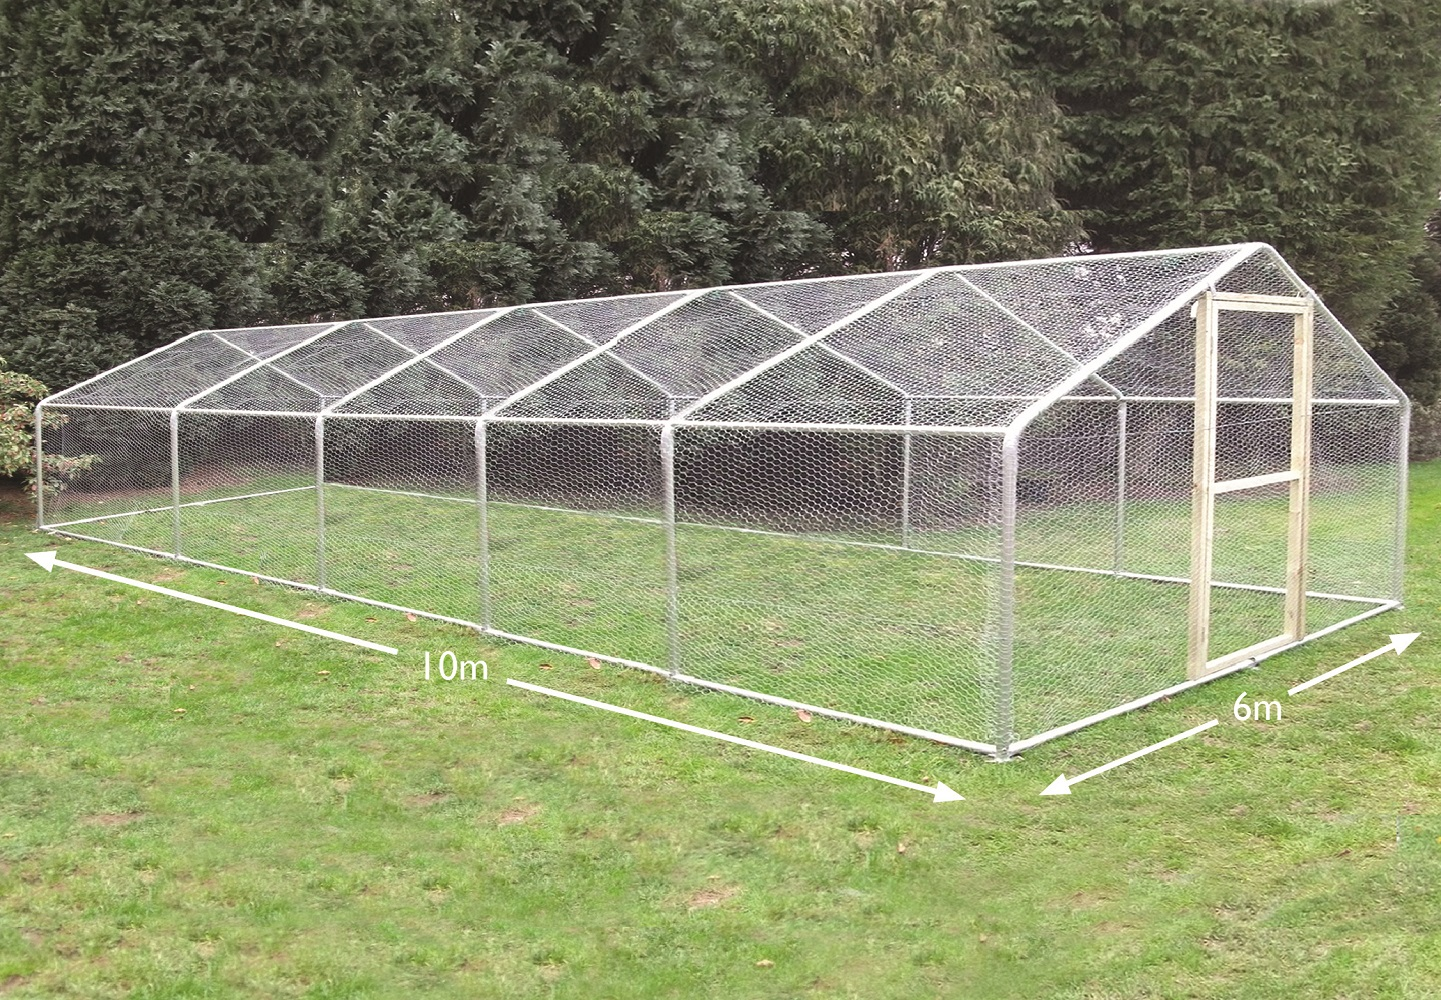 Chicken Runs Large Size 6m x 10m